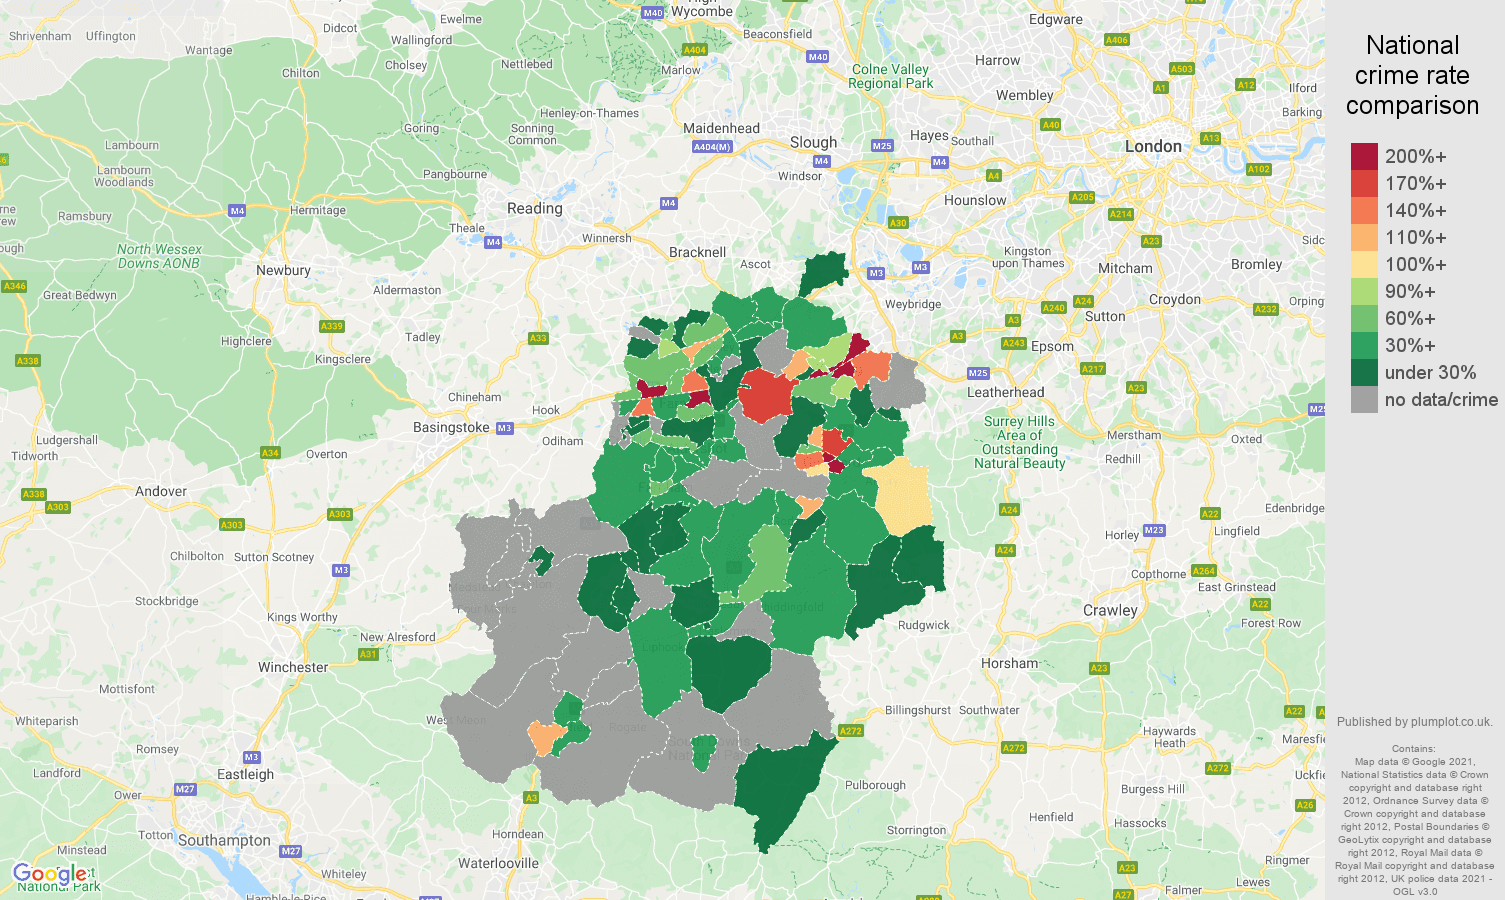 Guildford bicycle theft crime rate comparison map